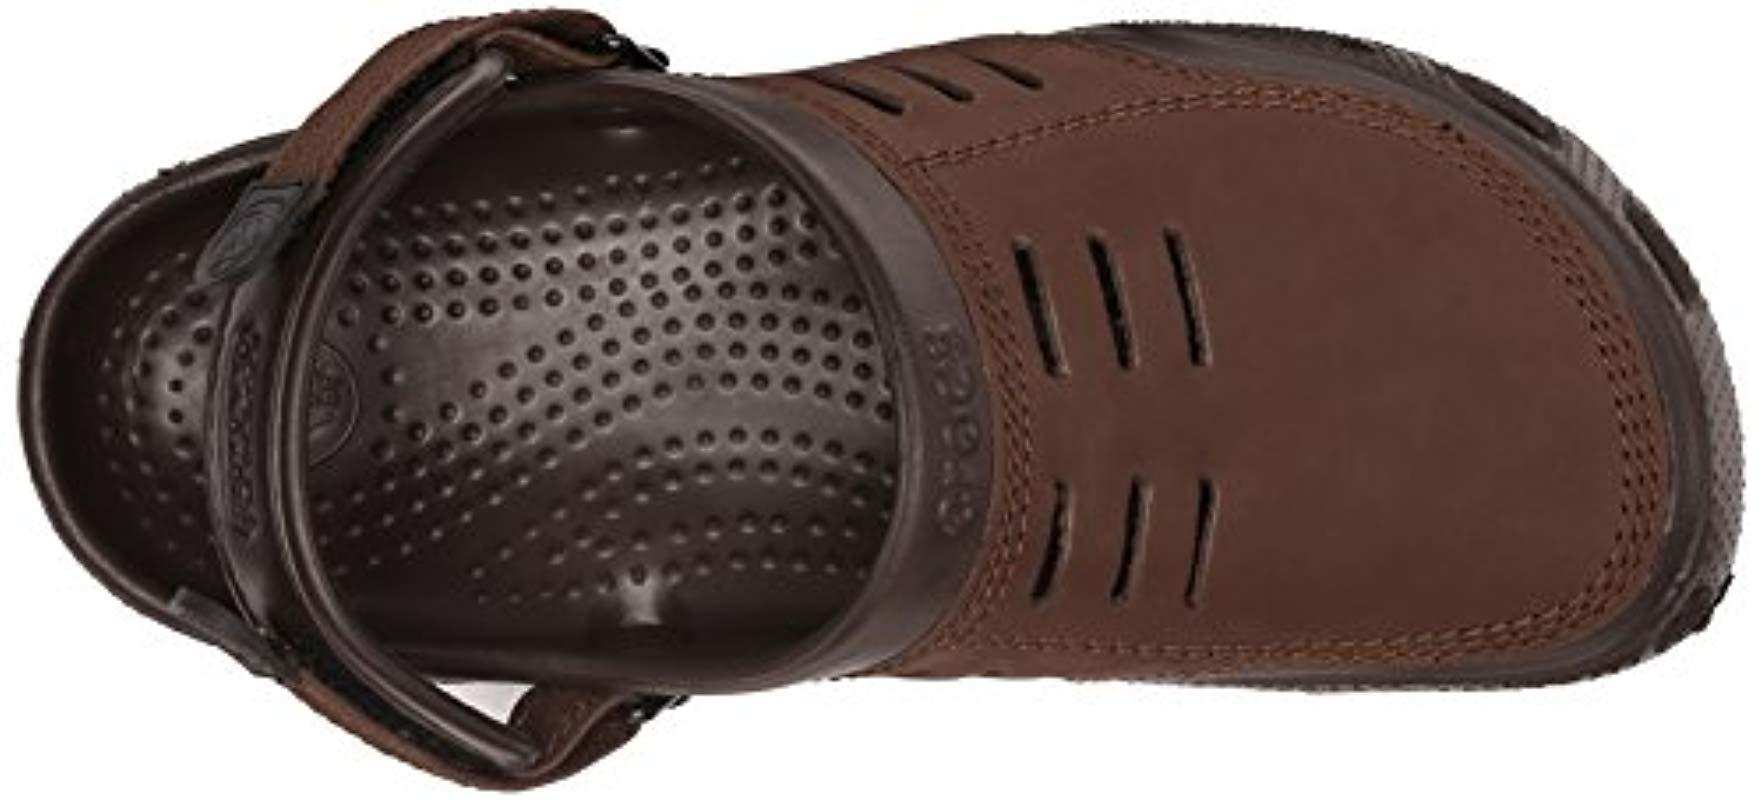 b2cbb9c82 Crocs™ Yukon Sport Clogs in Brown for Men - Lyst